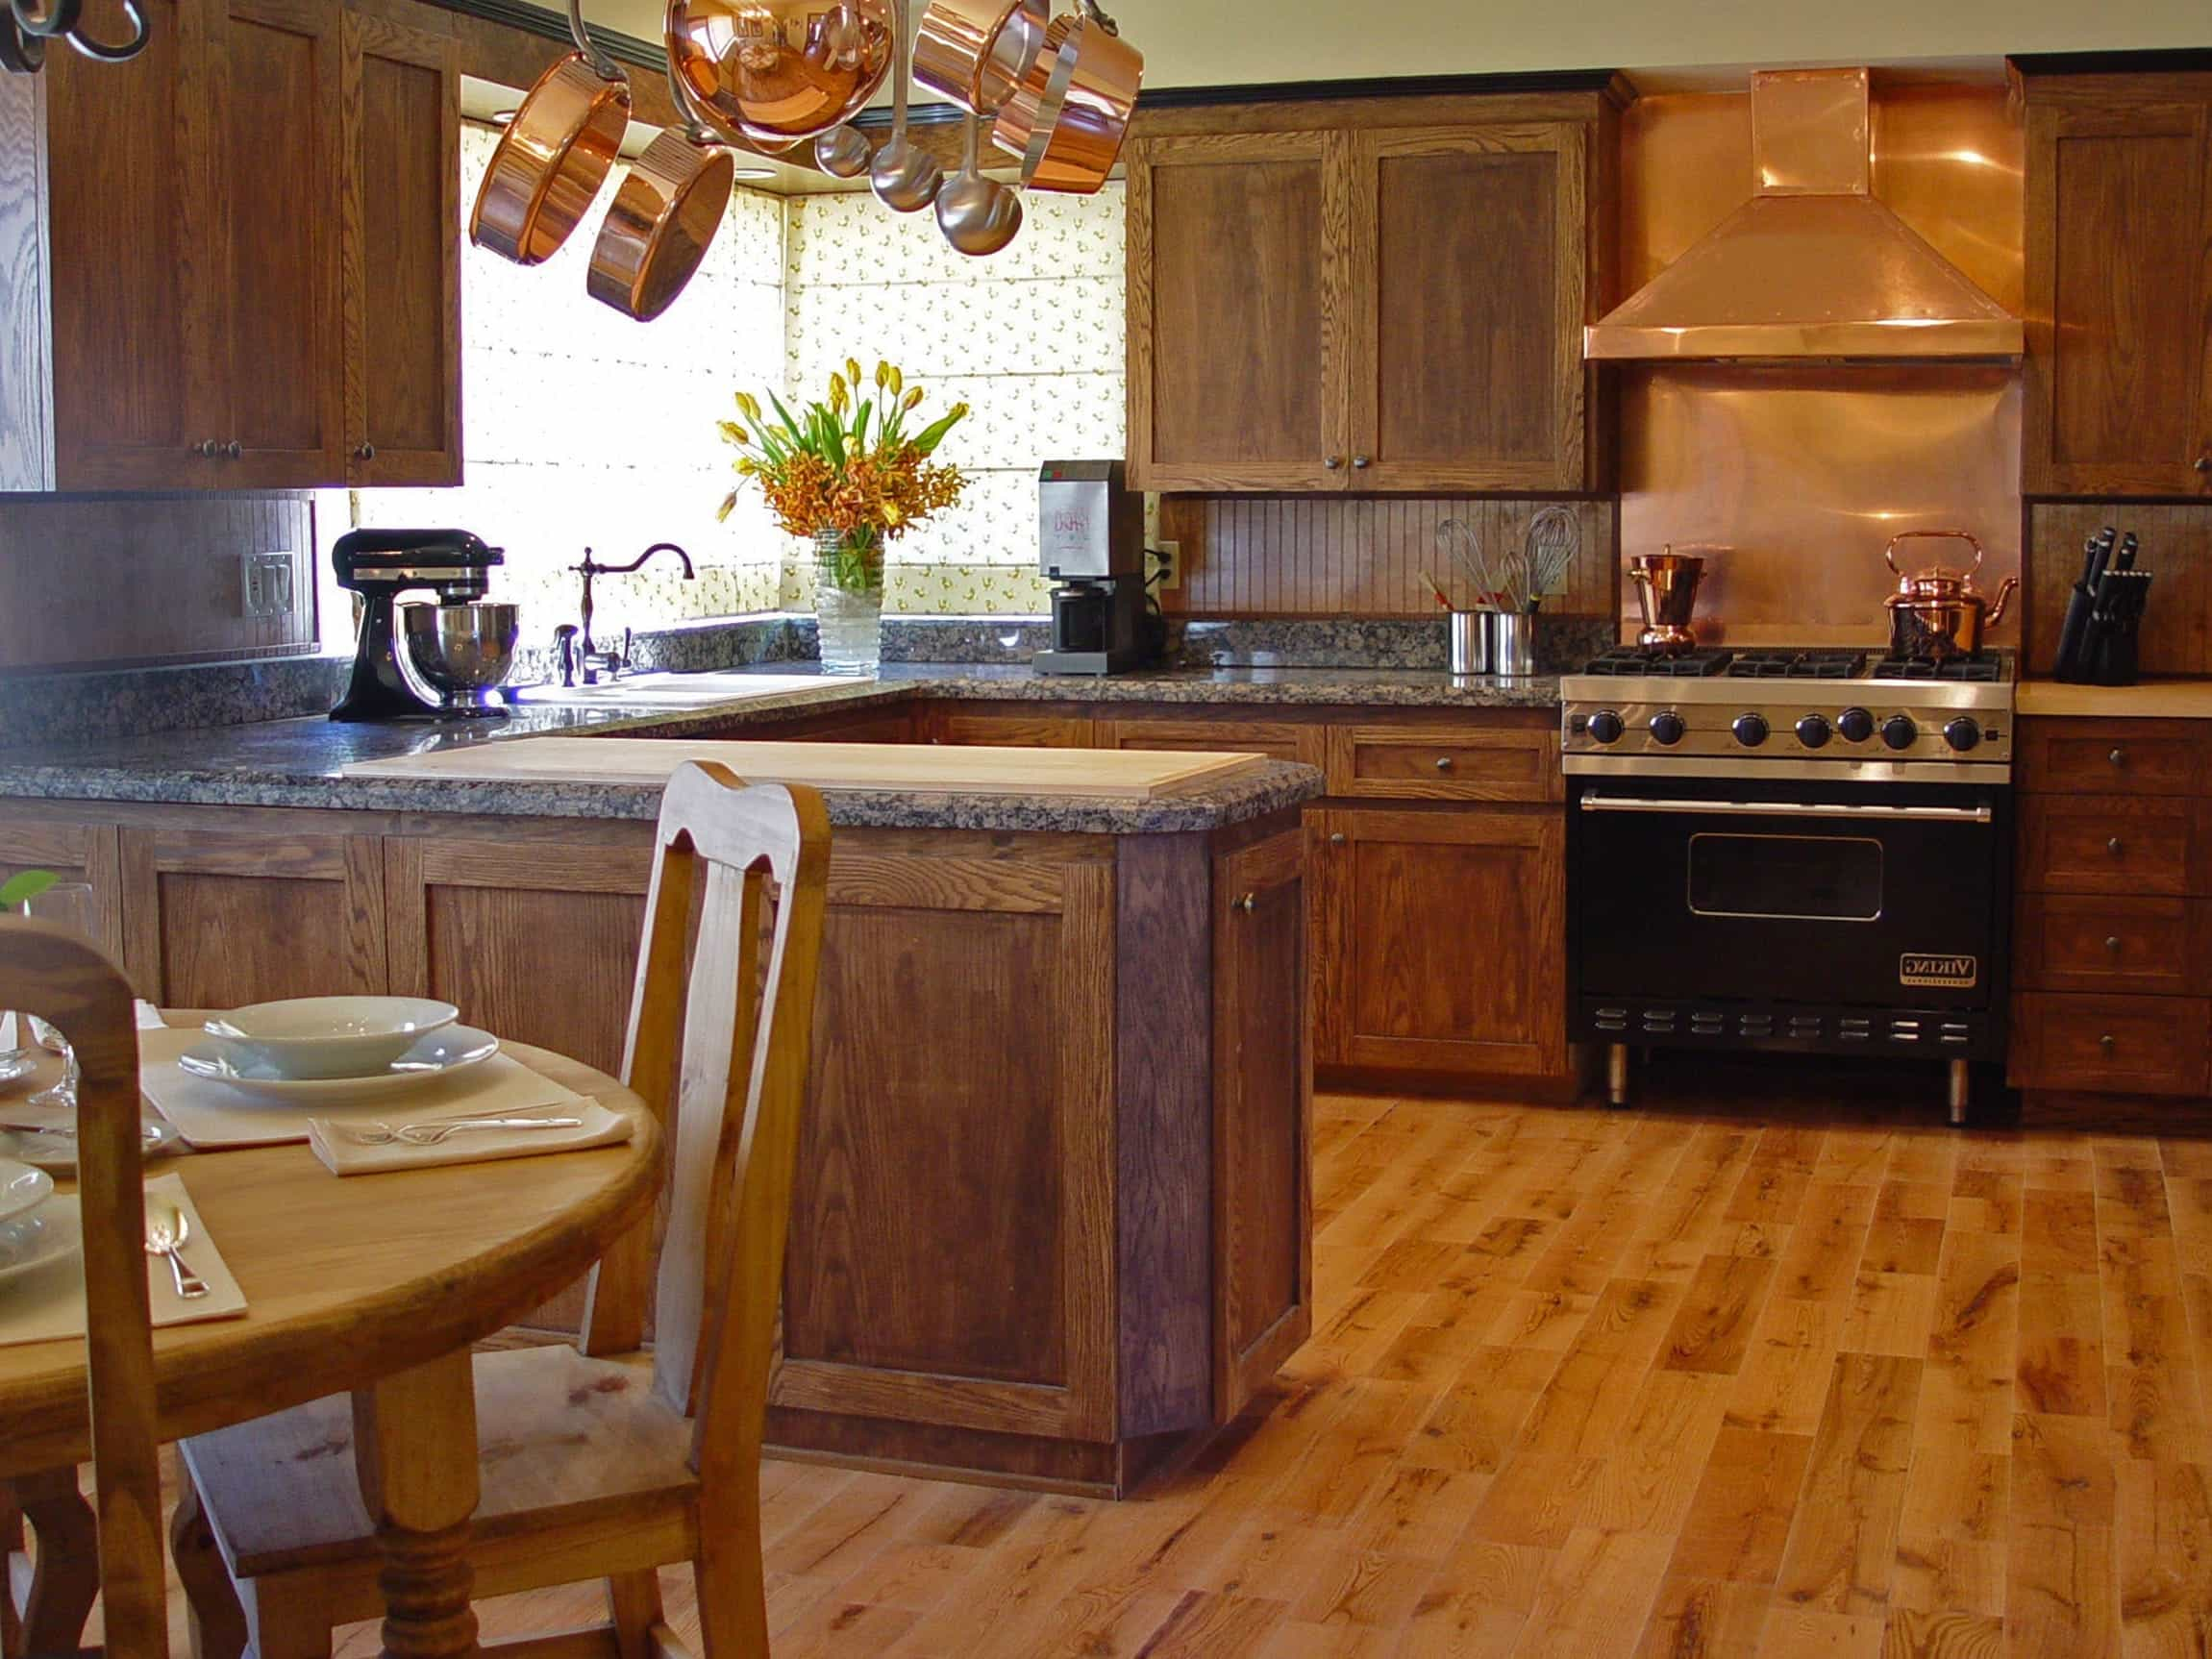 Modern Kitchen With Refinished Hardwood Floor (Image 8 of 12)